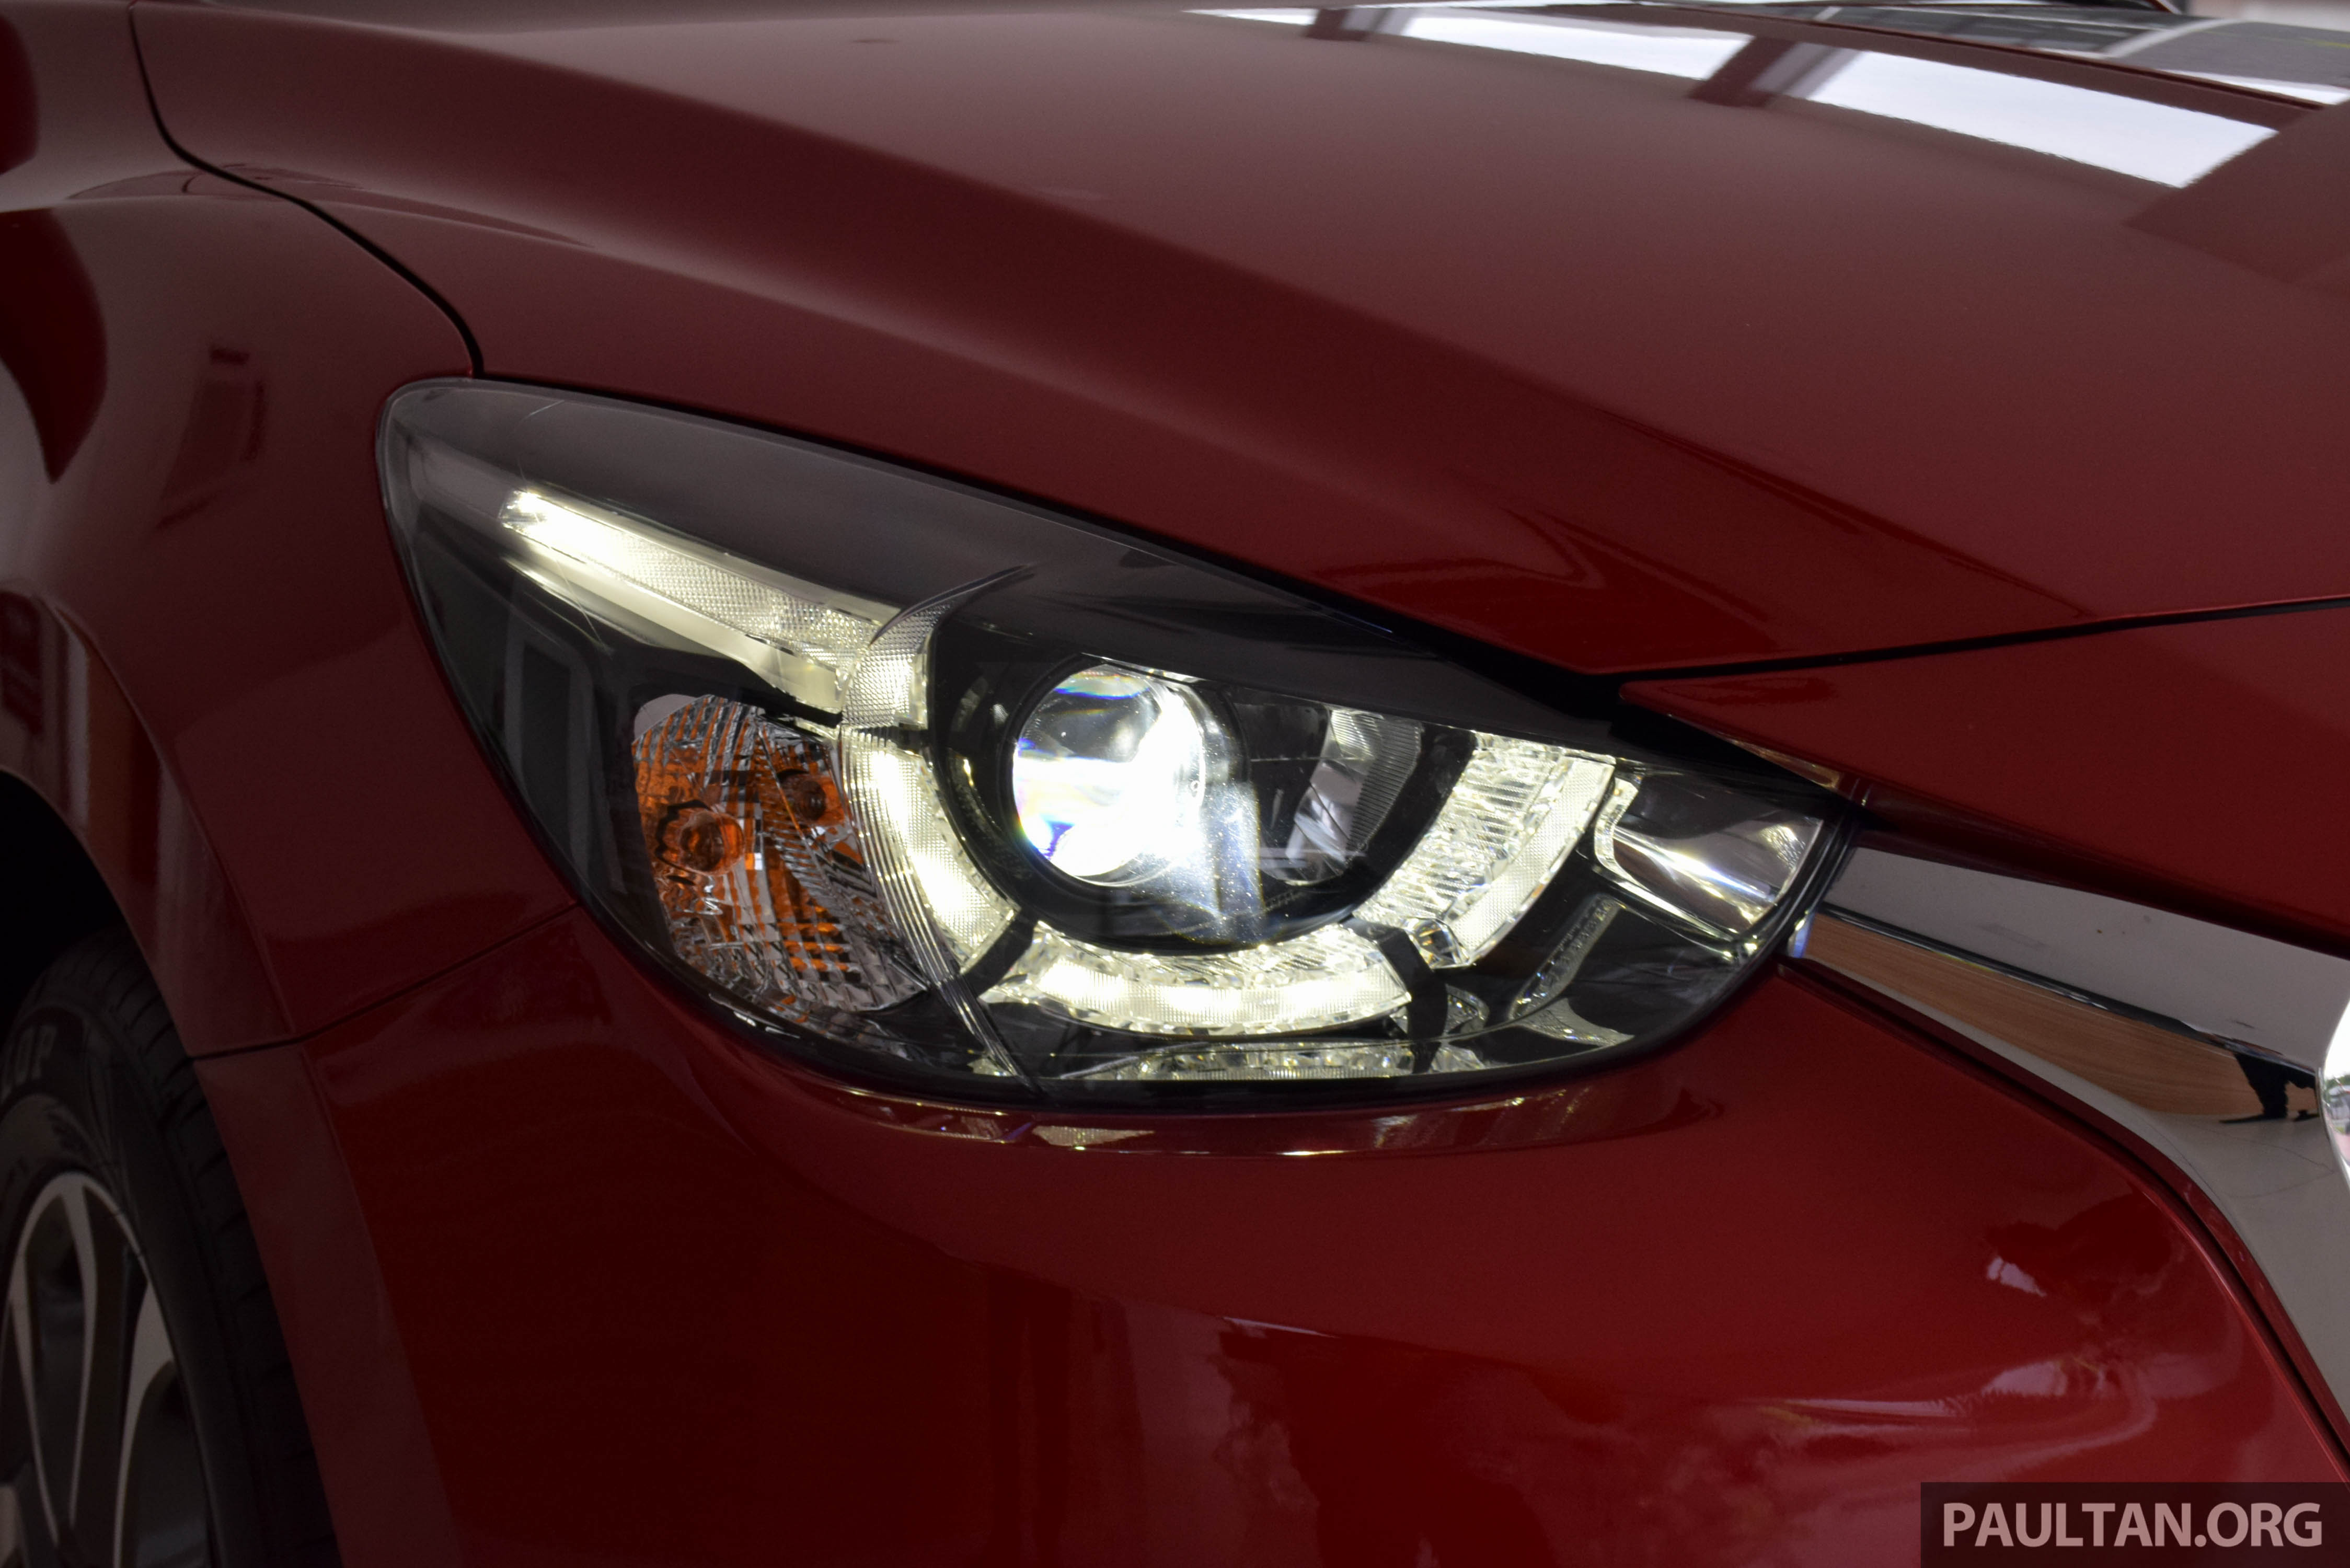 Are halogen to HID conversions legal? We ask JPJ